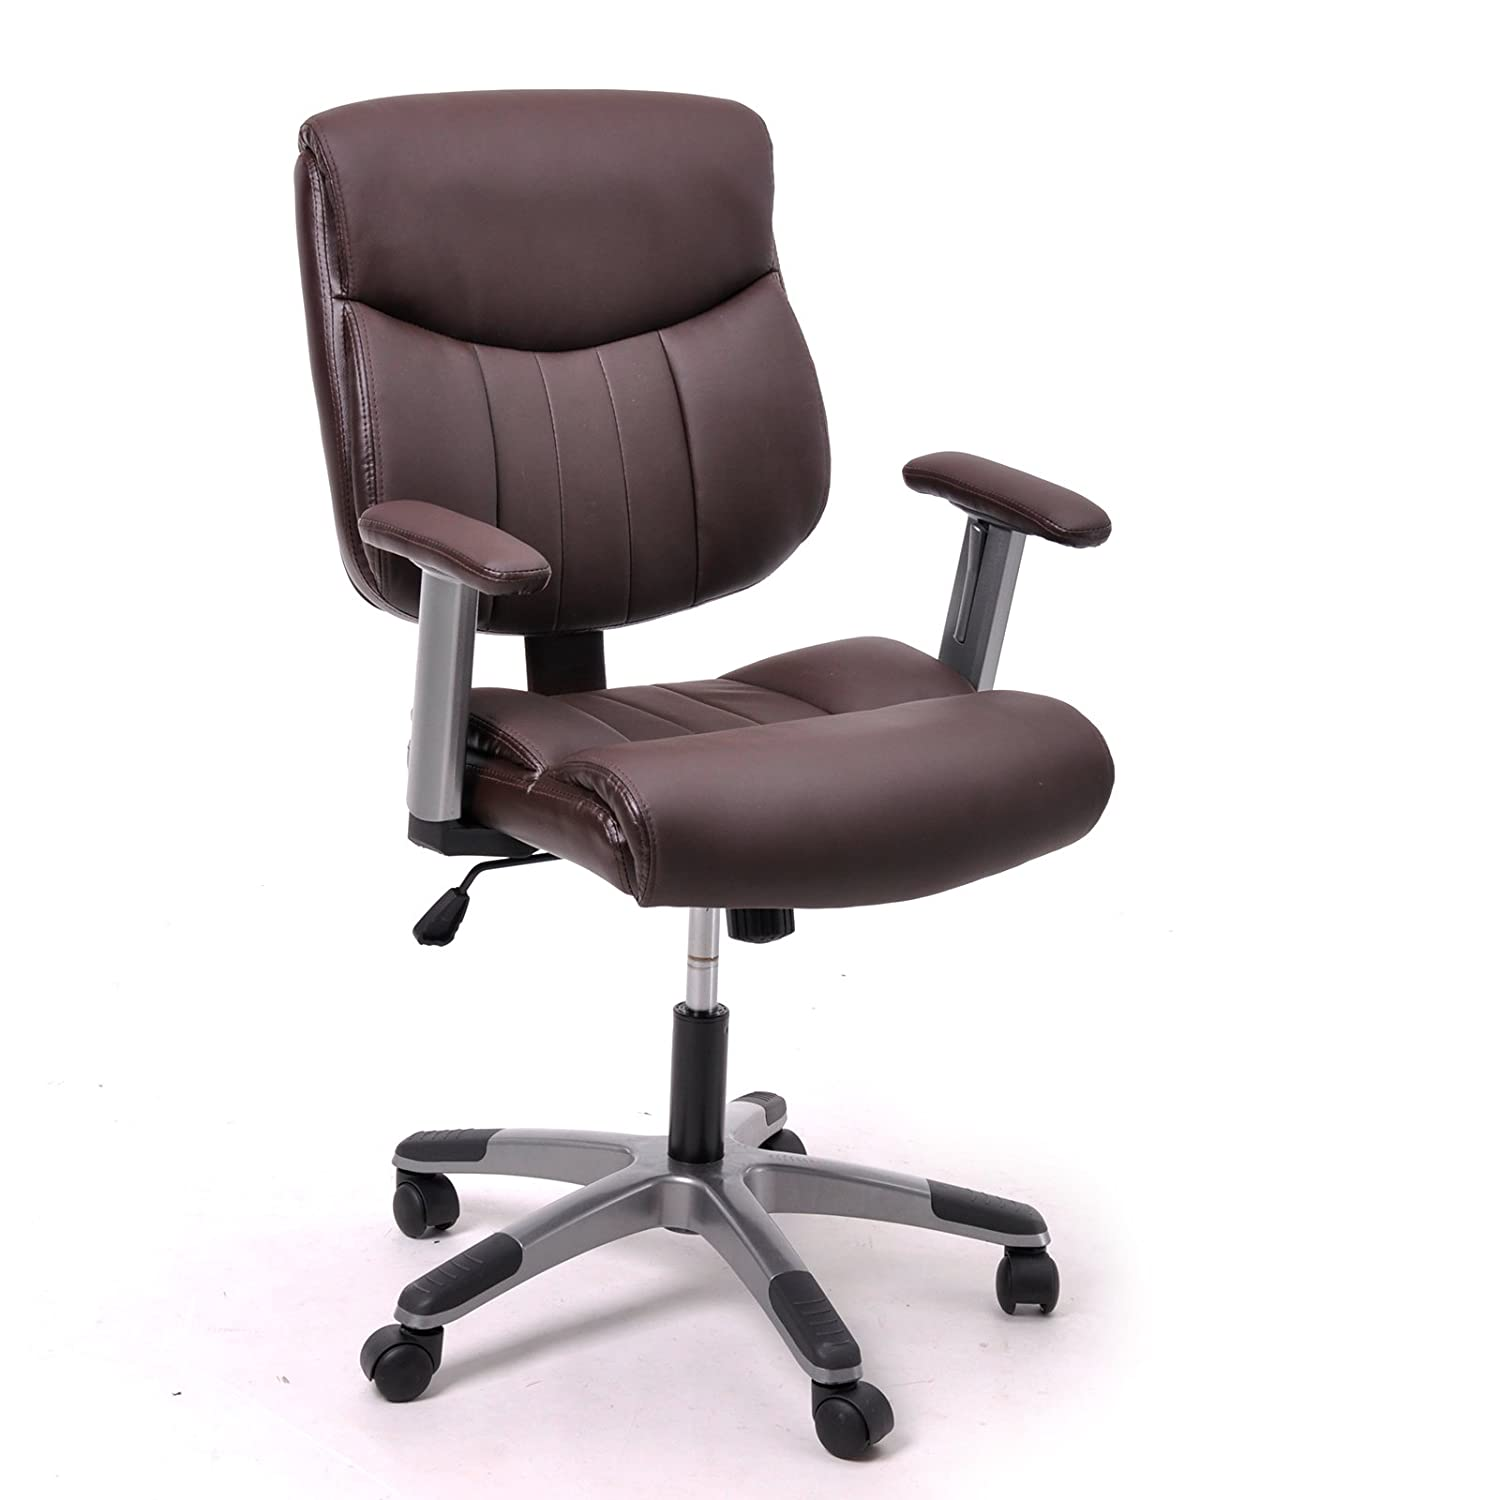 cheerwing brown pu leather task chair office computer desk tilt chair with arms tilting function best desk for home office